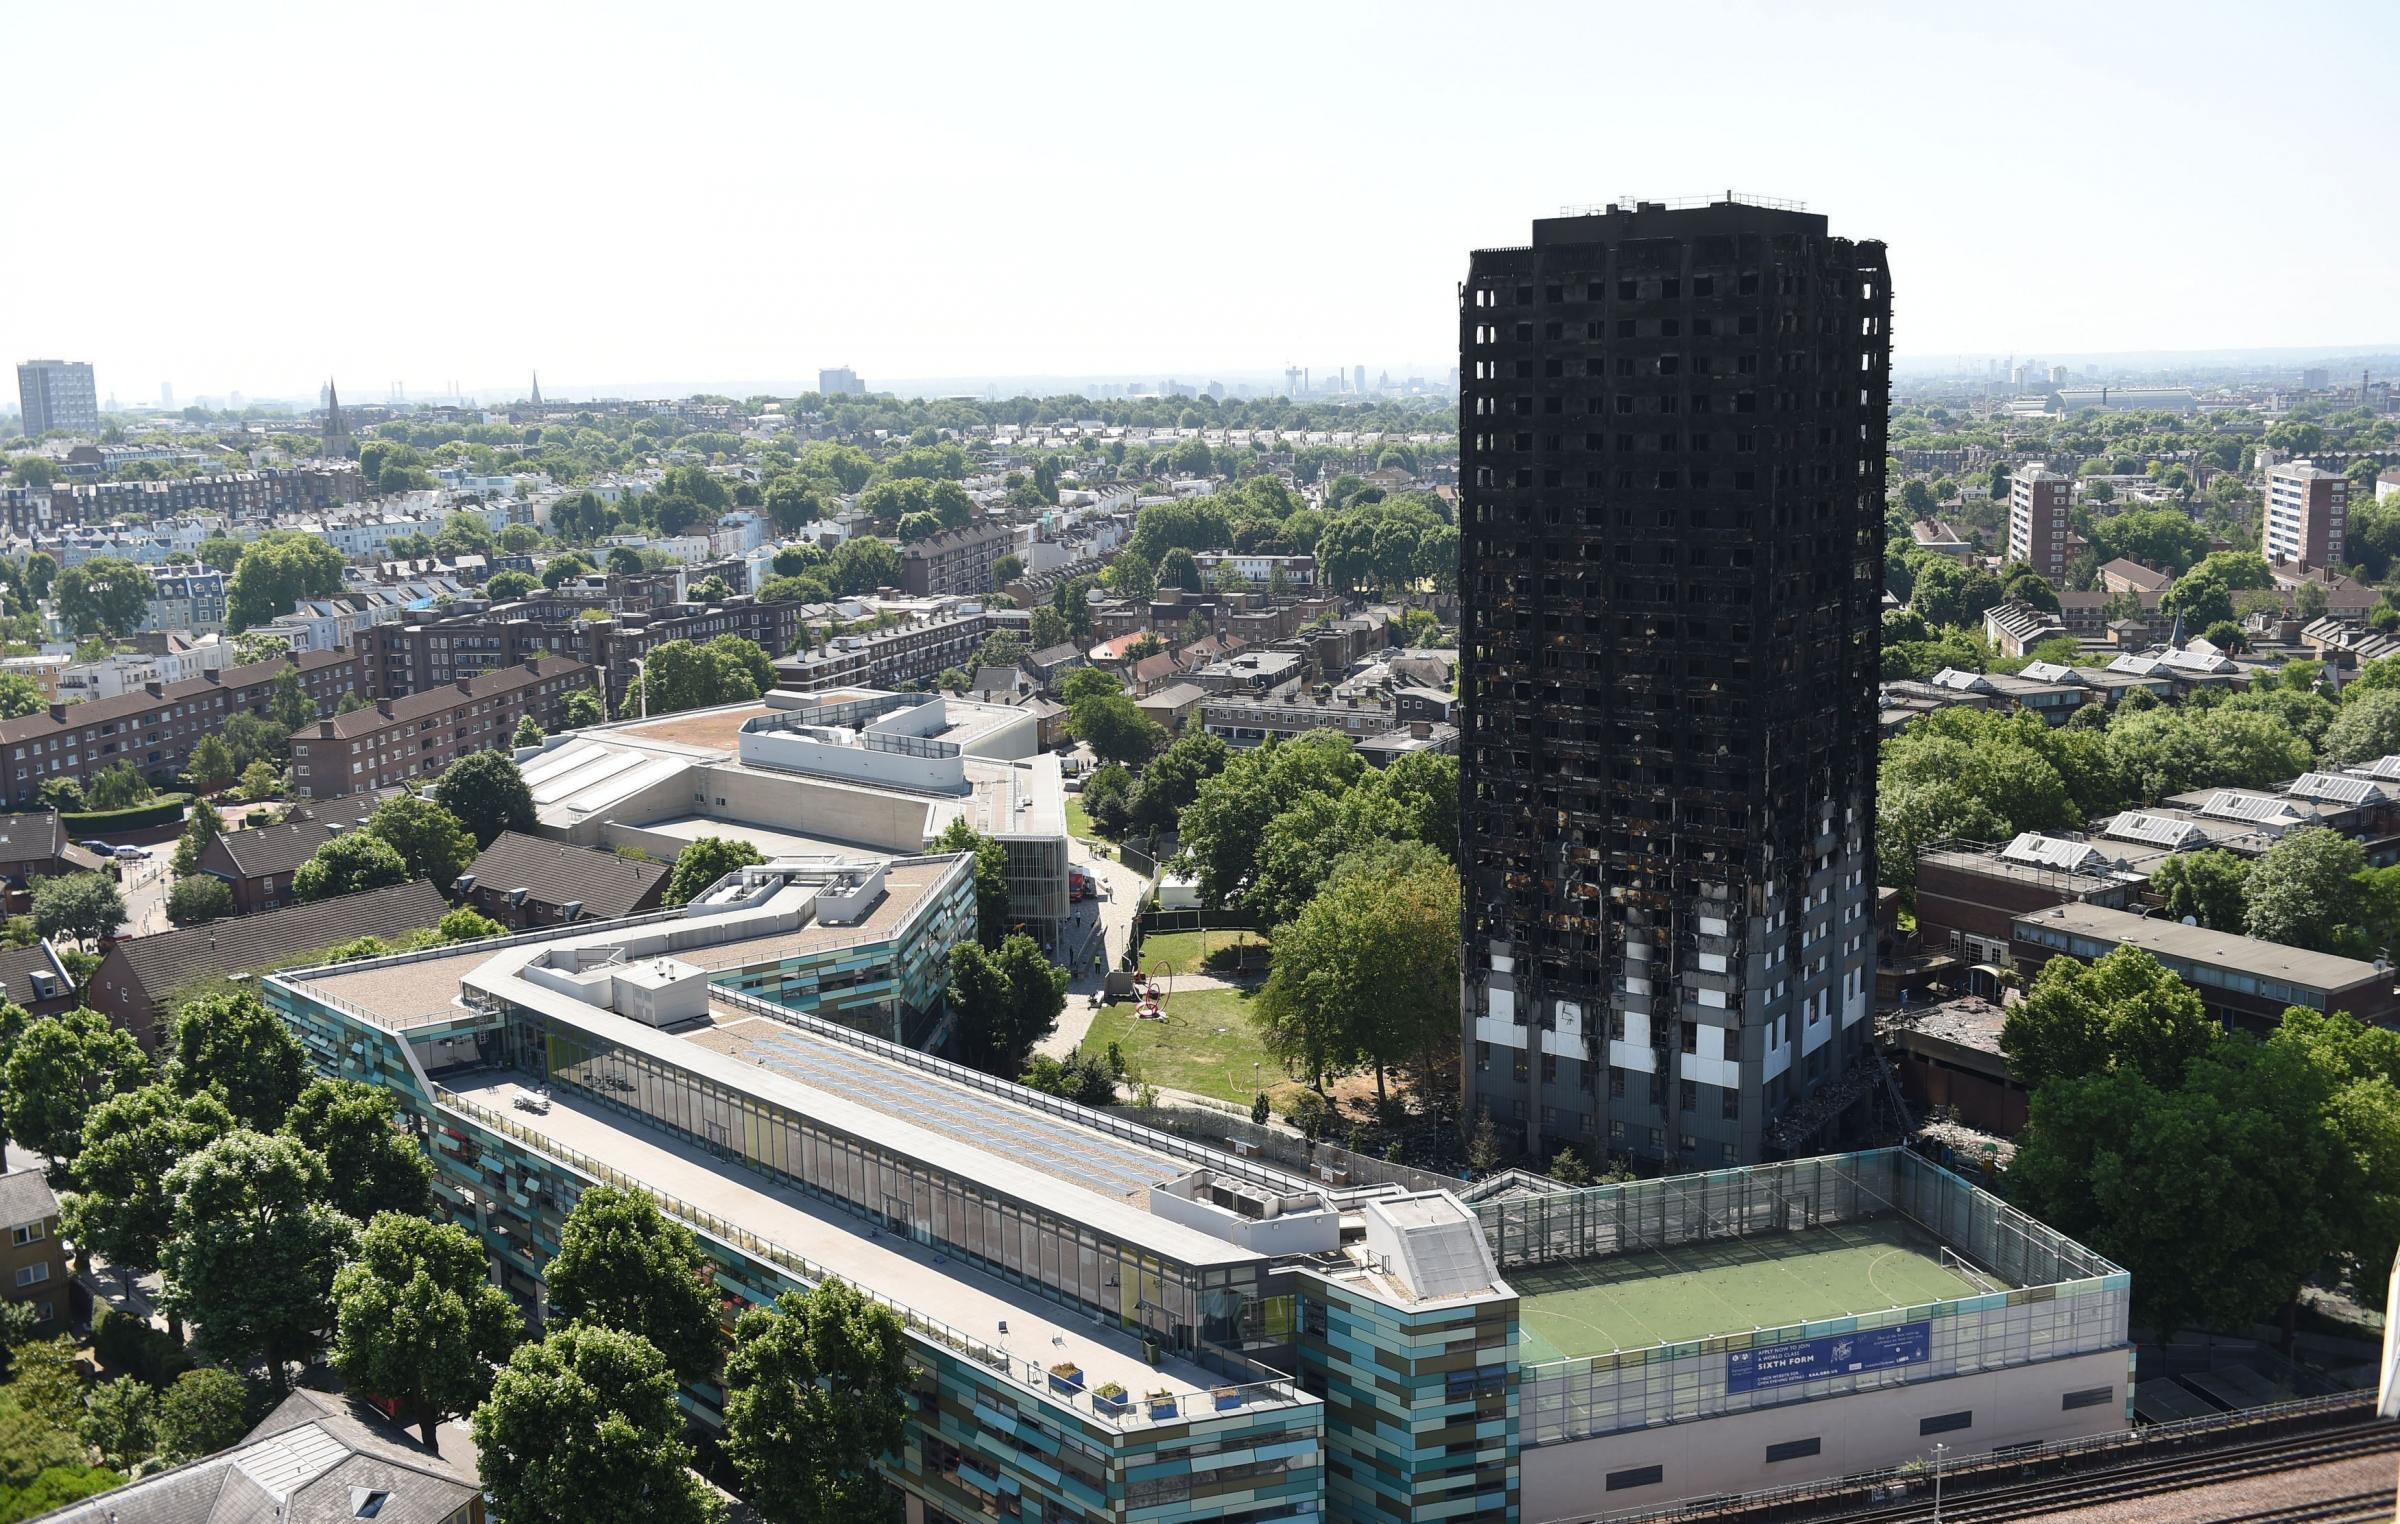 The fire at Grenfell Tower in London claimed 72 lives. Photo: David Mirzoeff/PA Wire